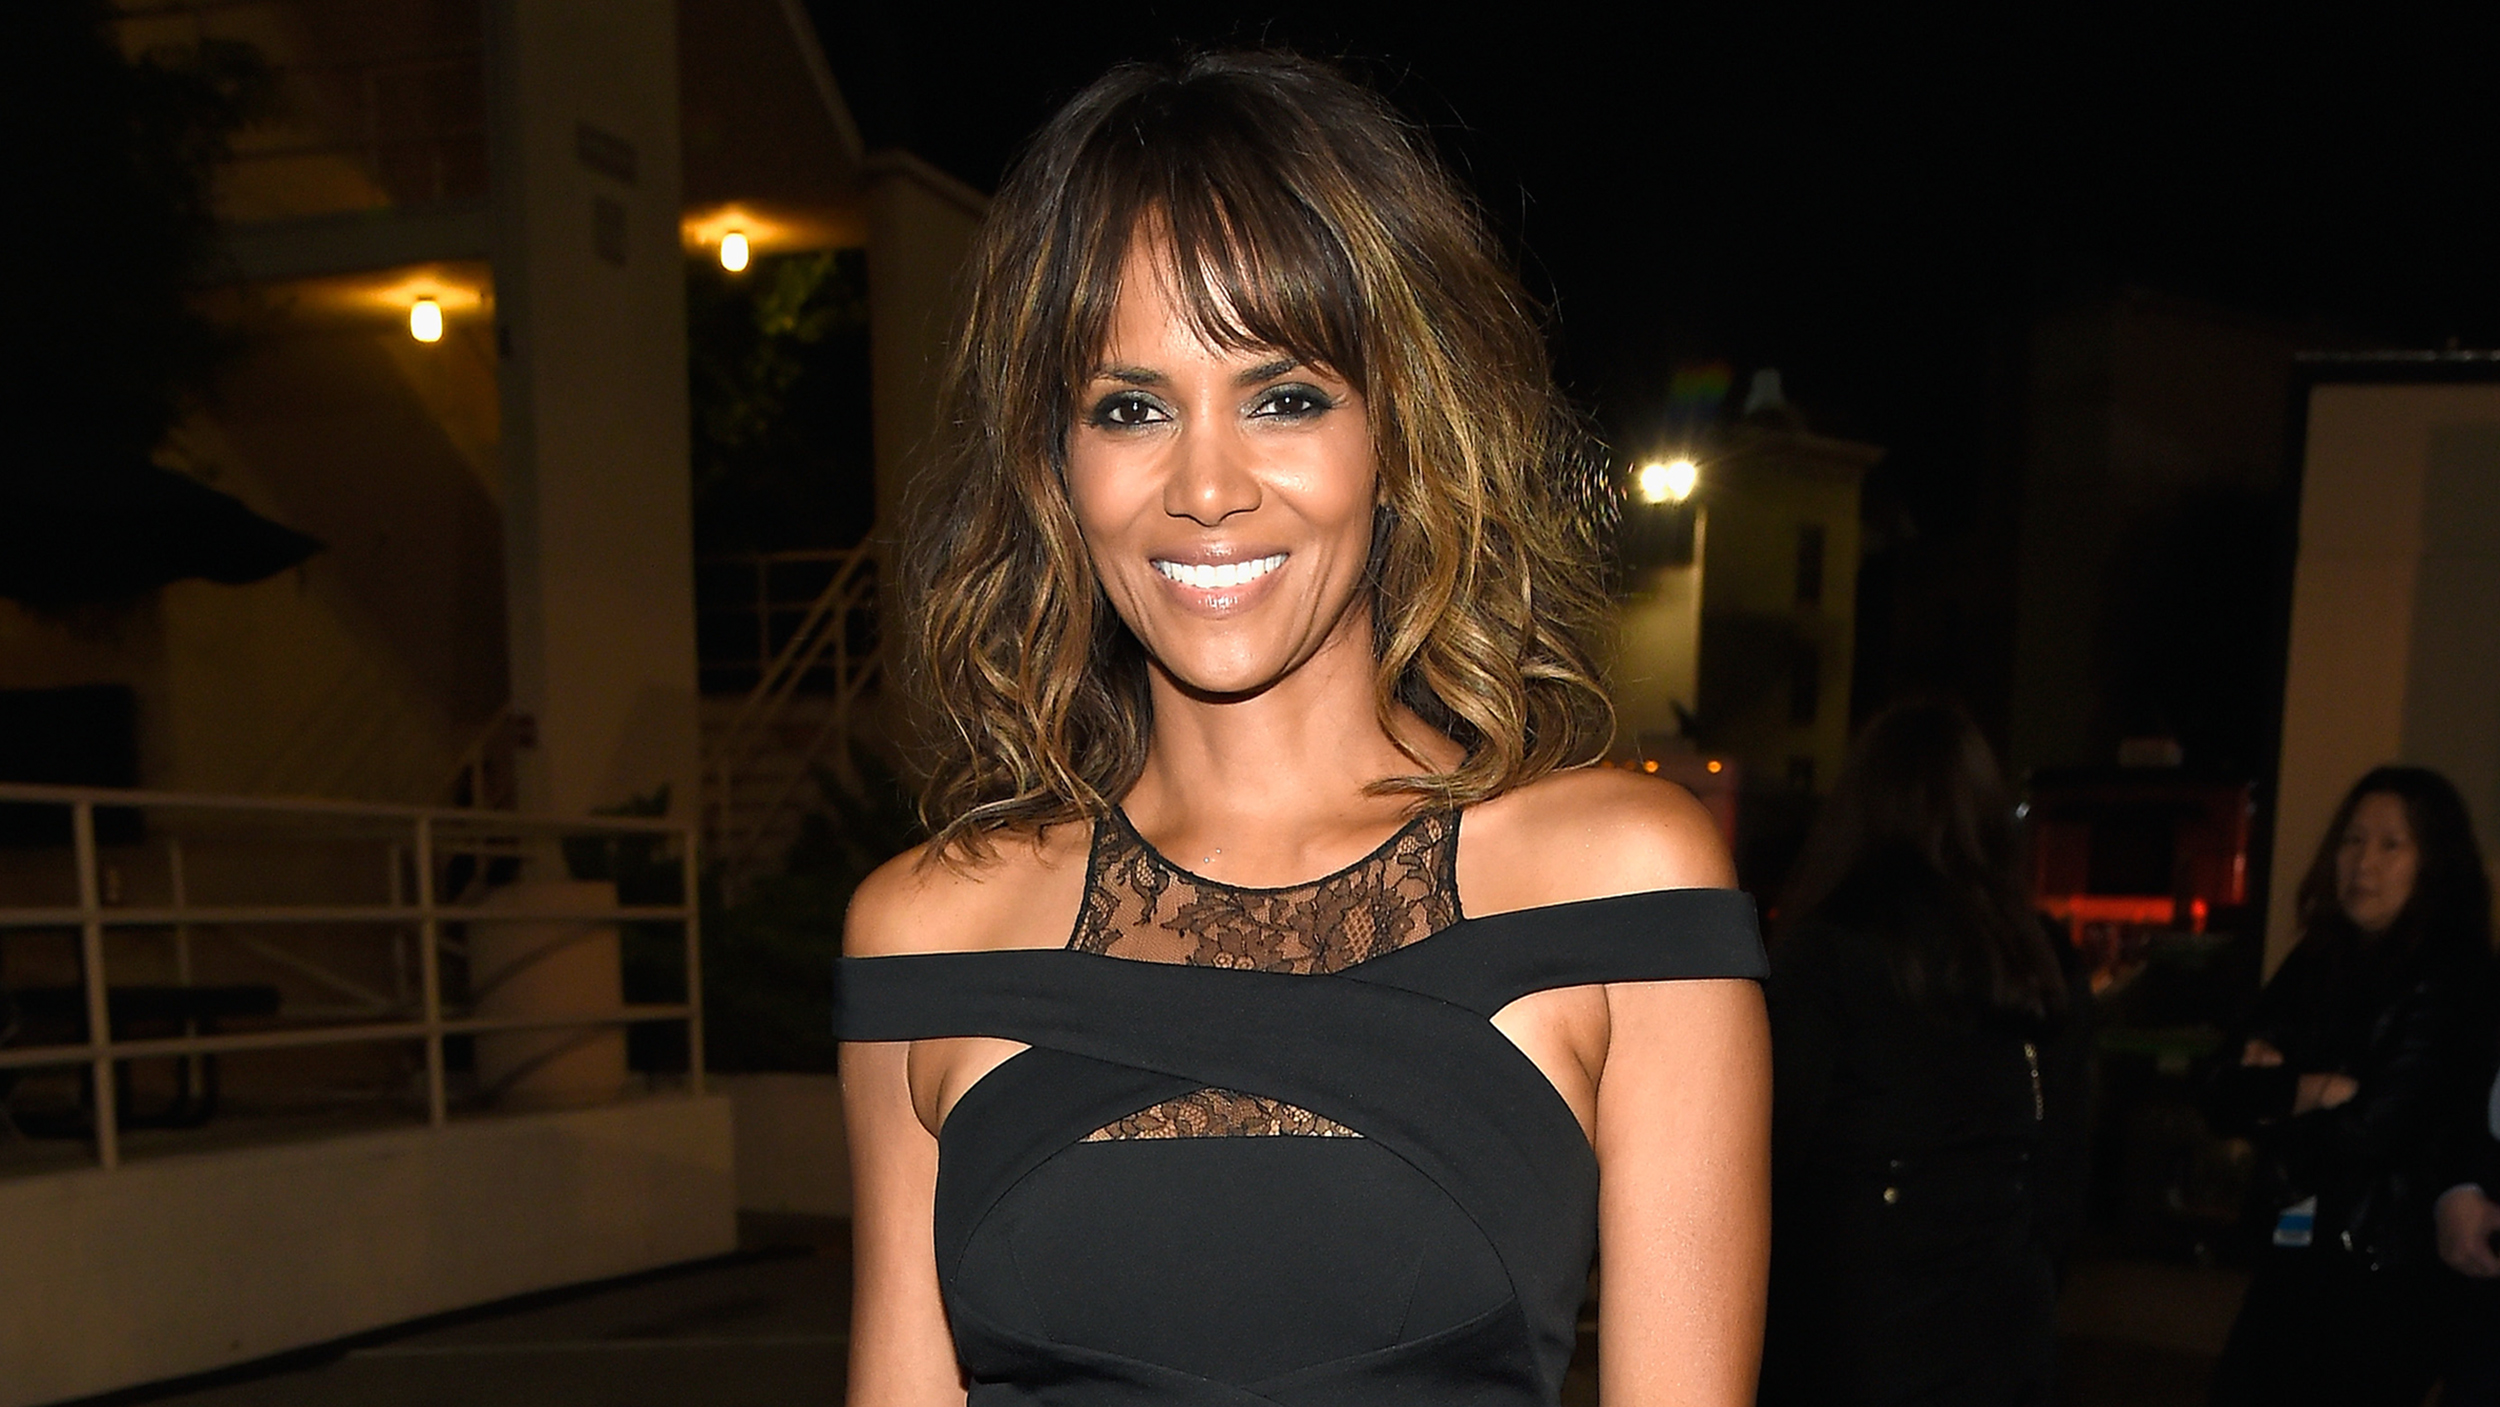 Latest Hair Styles For Boys In 2014 2: Halle Berry's New Short Hairstyle Is A Bowl Cut!